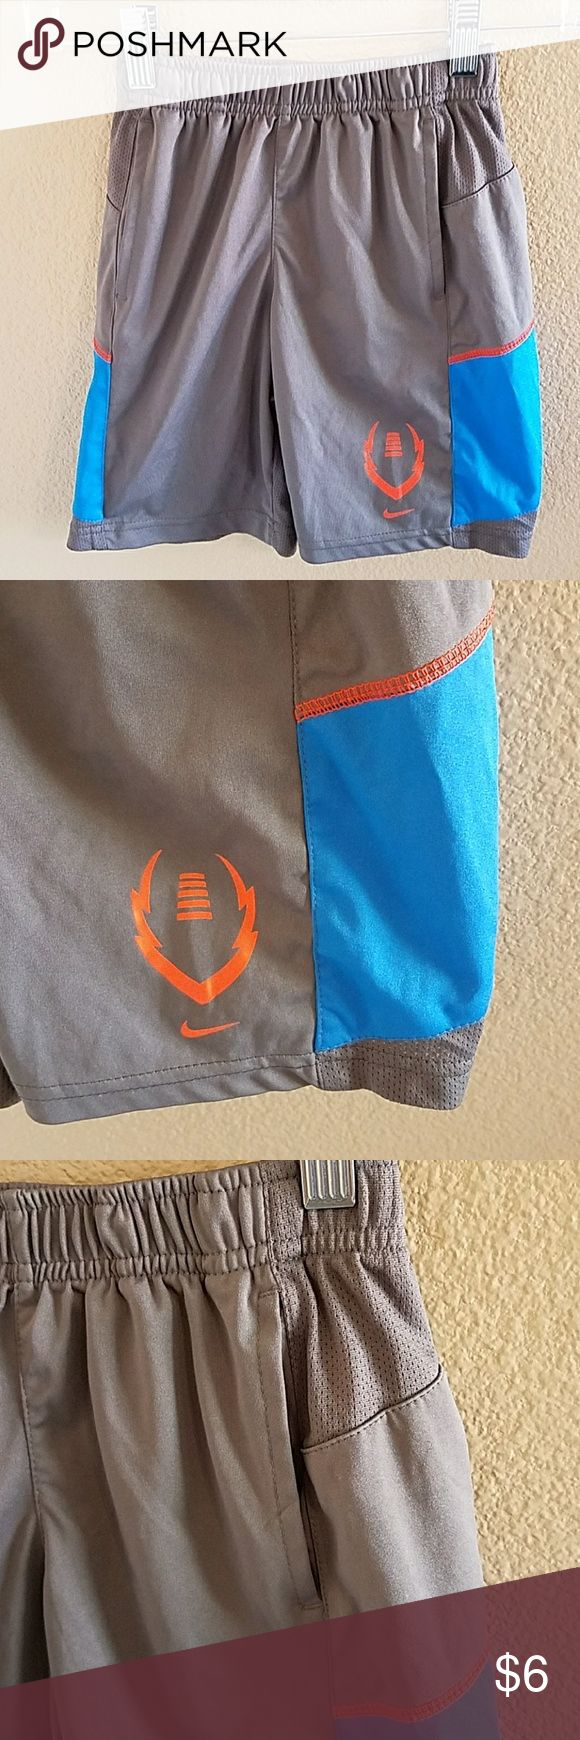 Nike Dri Fit Boys Basketball Shorts size 5 Nike Dri Fit Boys Basketball Shorts size 5 With accents of Blue and Orange. Pockets on front. Great condition overall but the last Pic is showing where the Dri Fit Iron On is mostly gone Nike Bottoms Shorts